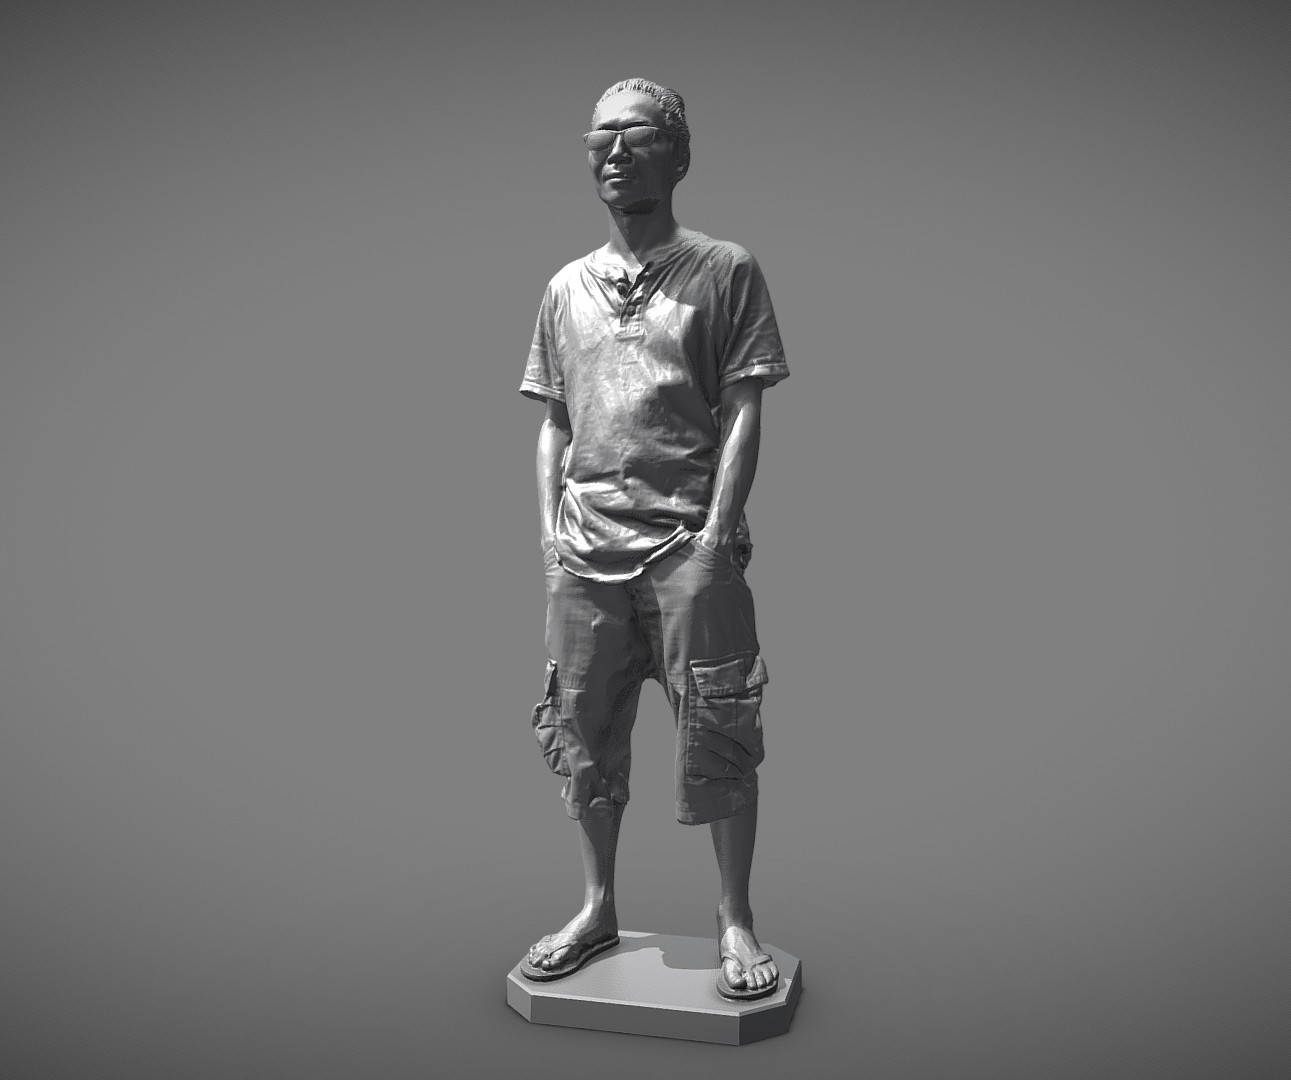 3D models by mwopus (@mwopus) - Sketchfab20190320-007961.jpg Download STL file MW 3D printing test-Low,Medium,High • Template to 3D print, MWopus